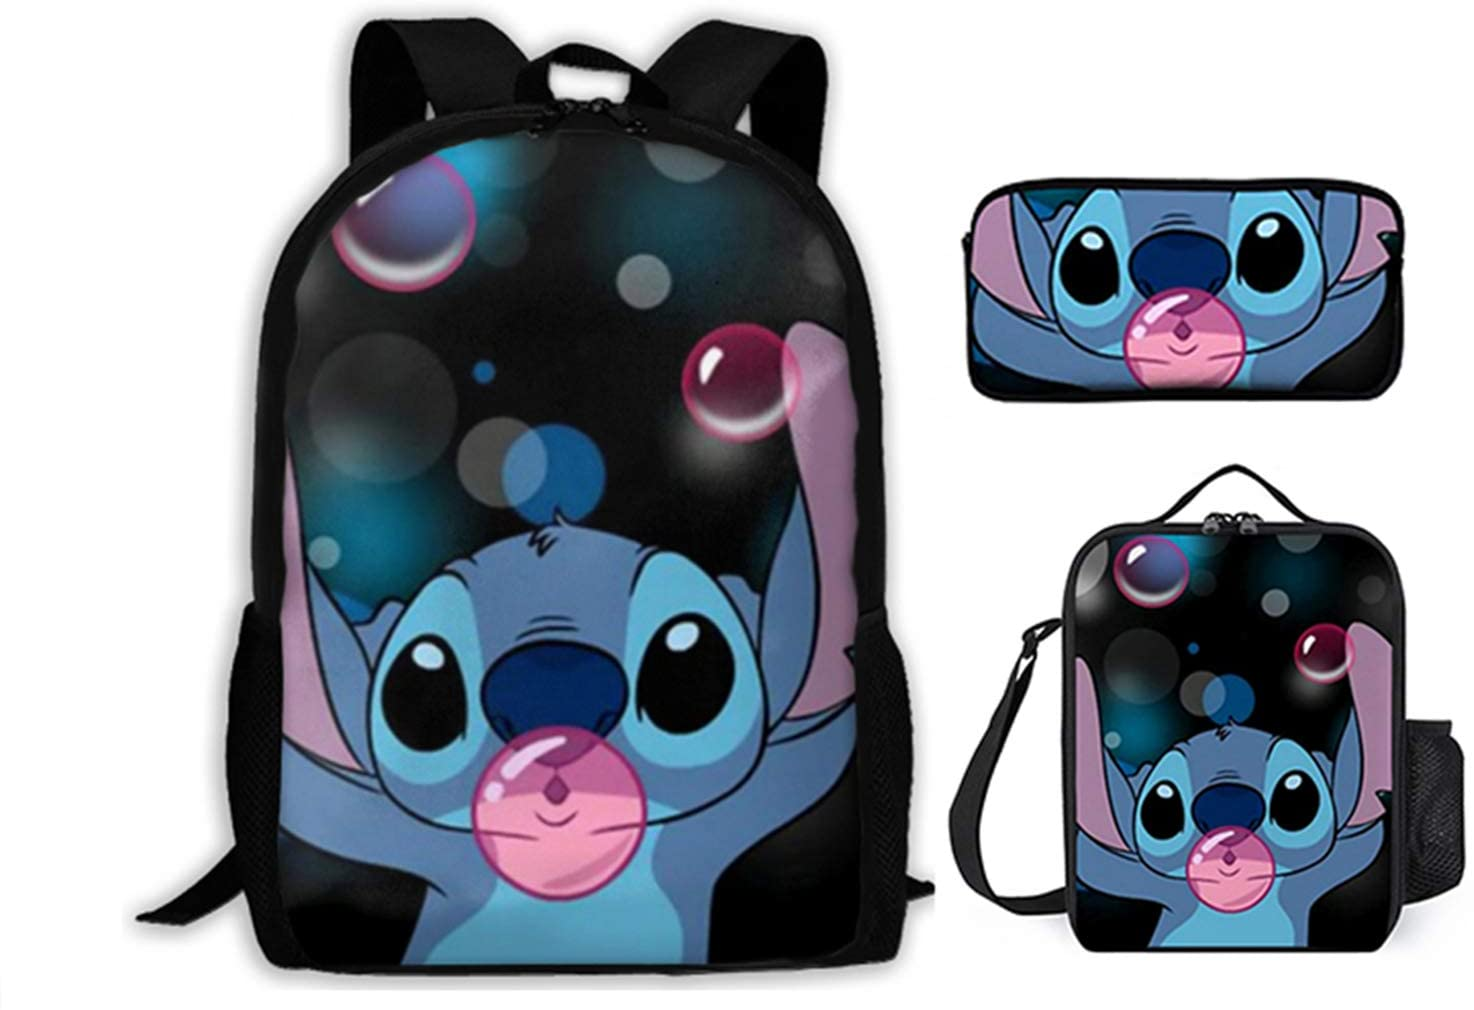 Li-Lo And St-It-Ch 3 Pieces School Backpack Set With Lunch Bag Pencil Case For Boys Girls, Large Capacity.